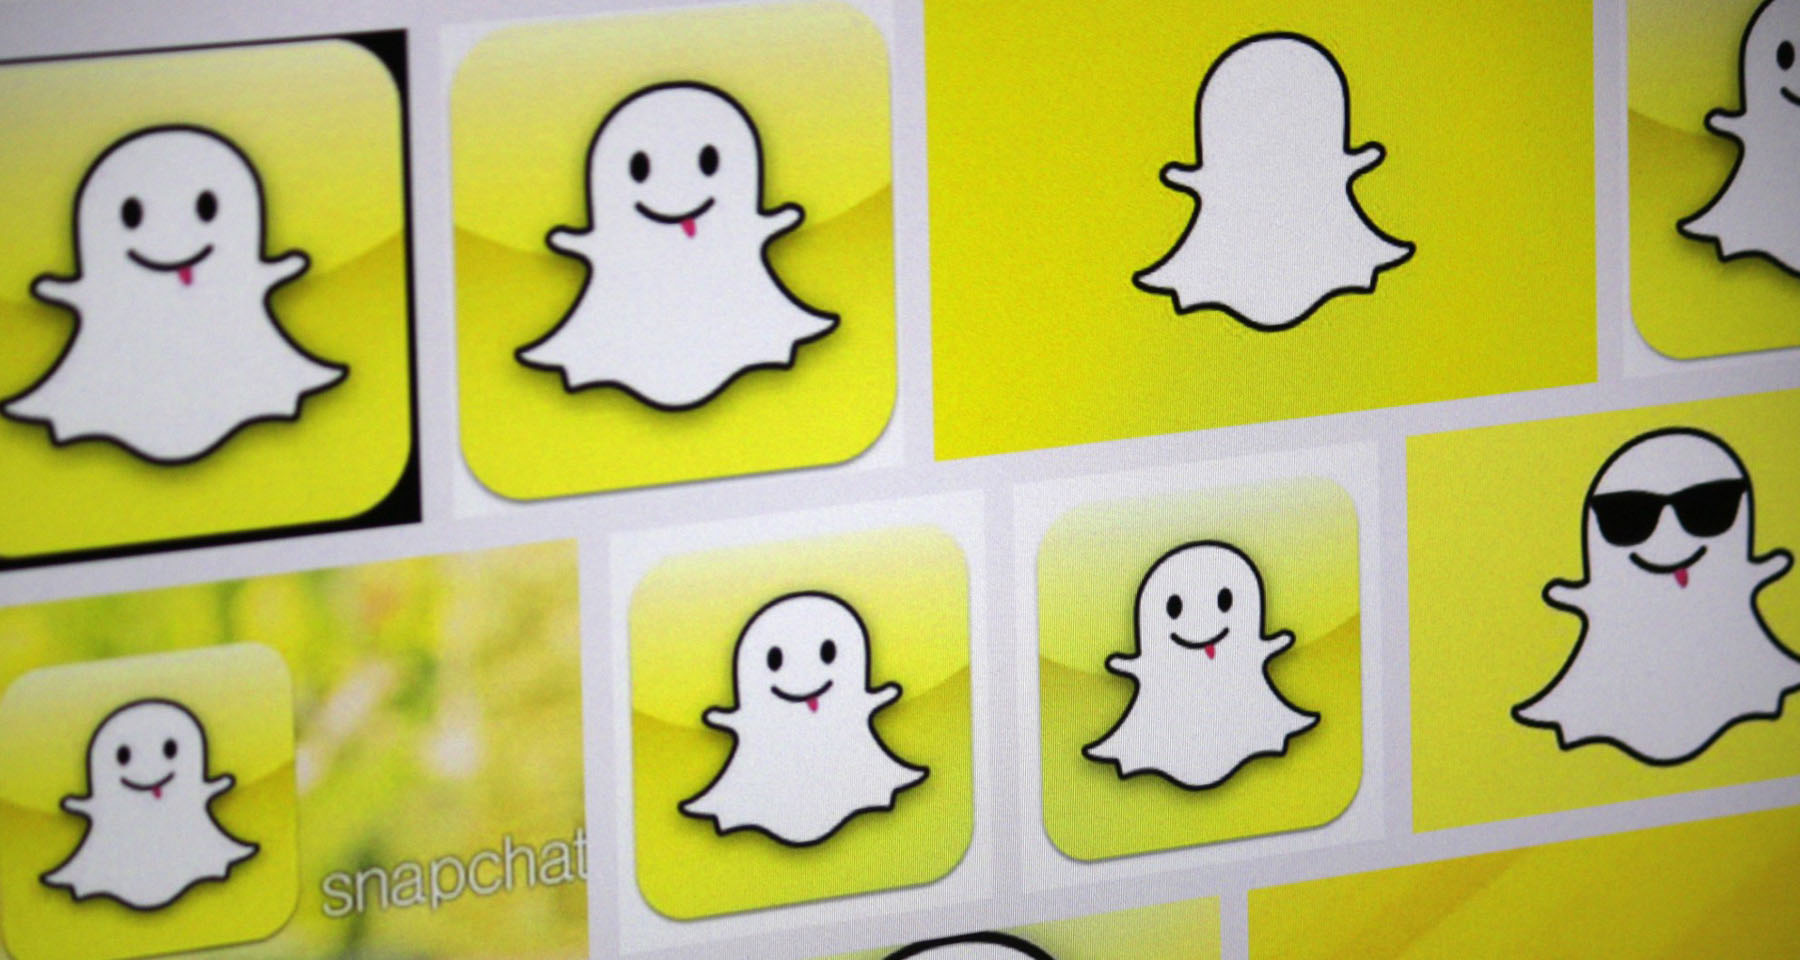 How Snapchat works for advertisers